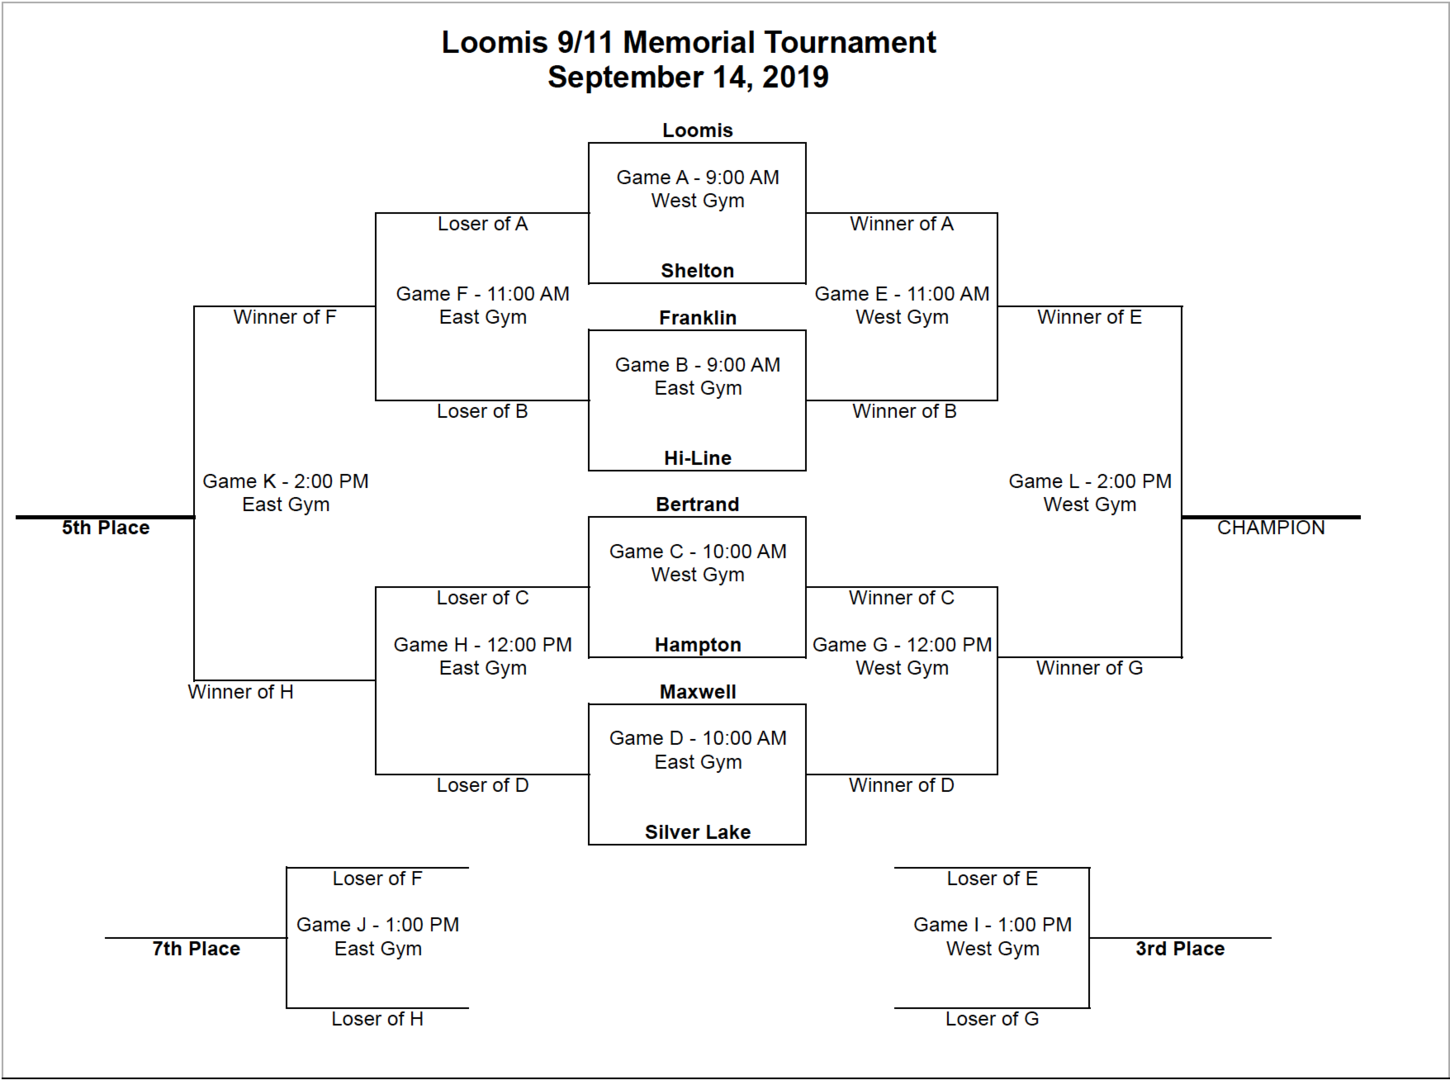 Loomis 9/11 Memorial Tournament